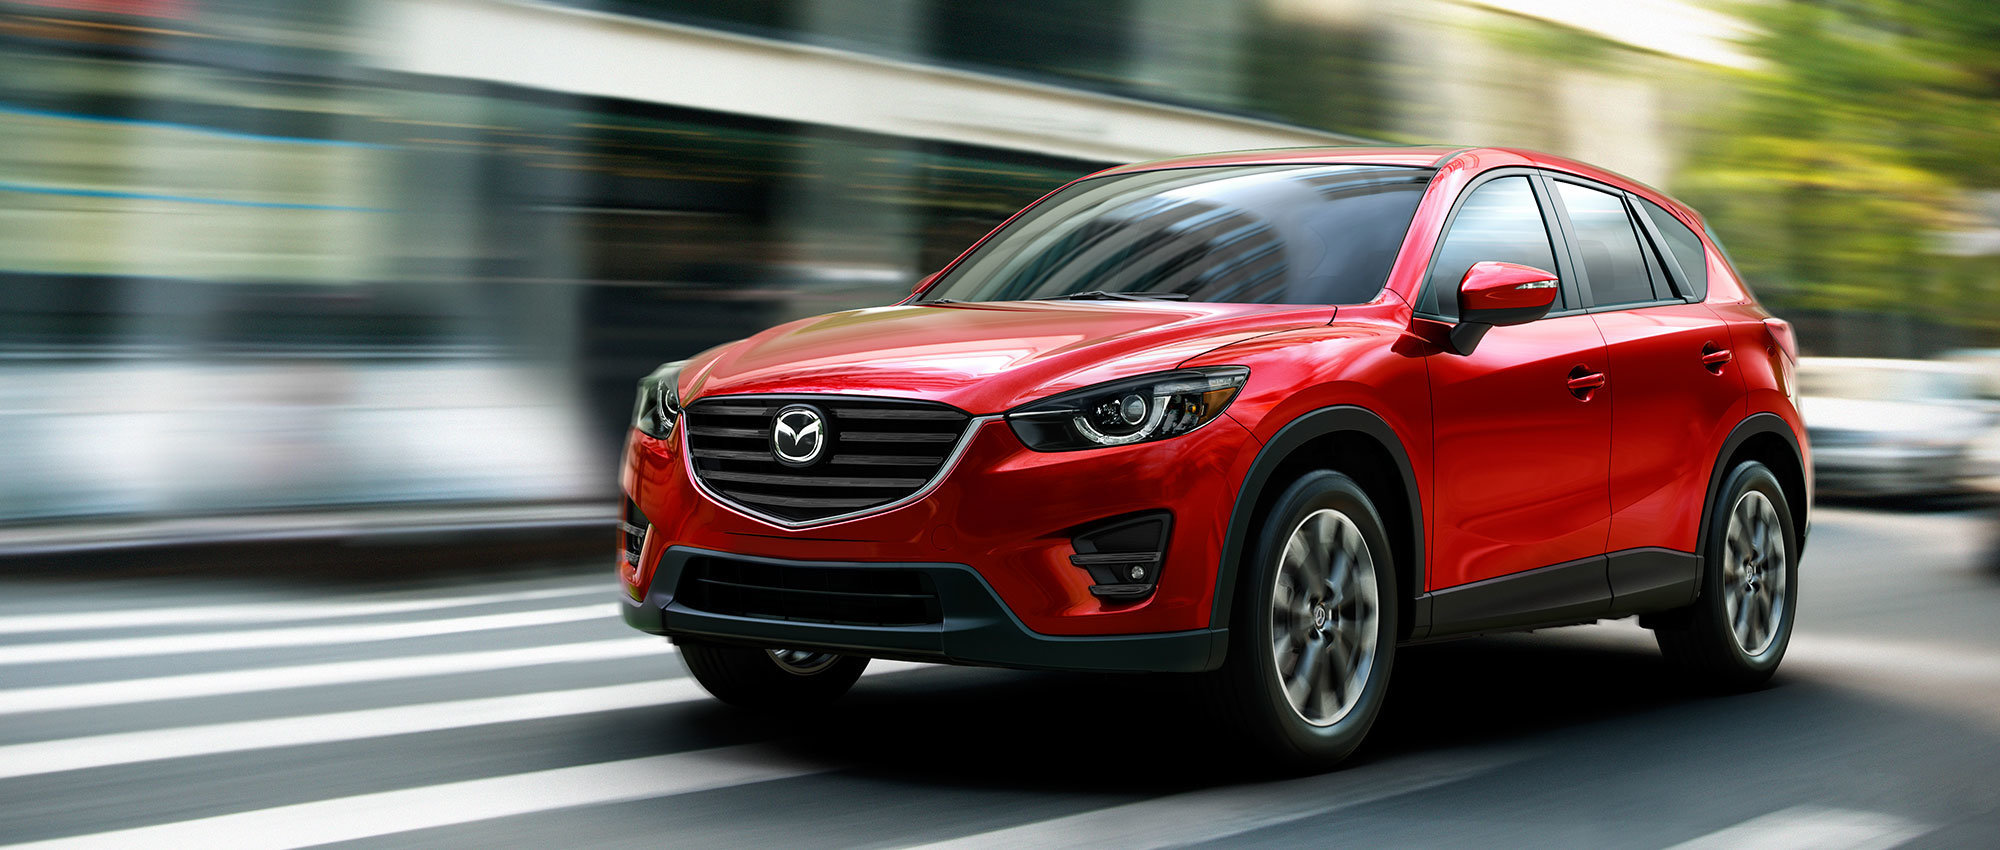 Mazda CX-5 vs. Honda CR-V